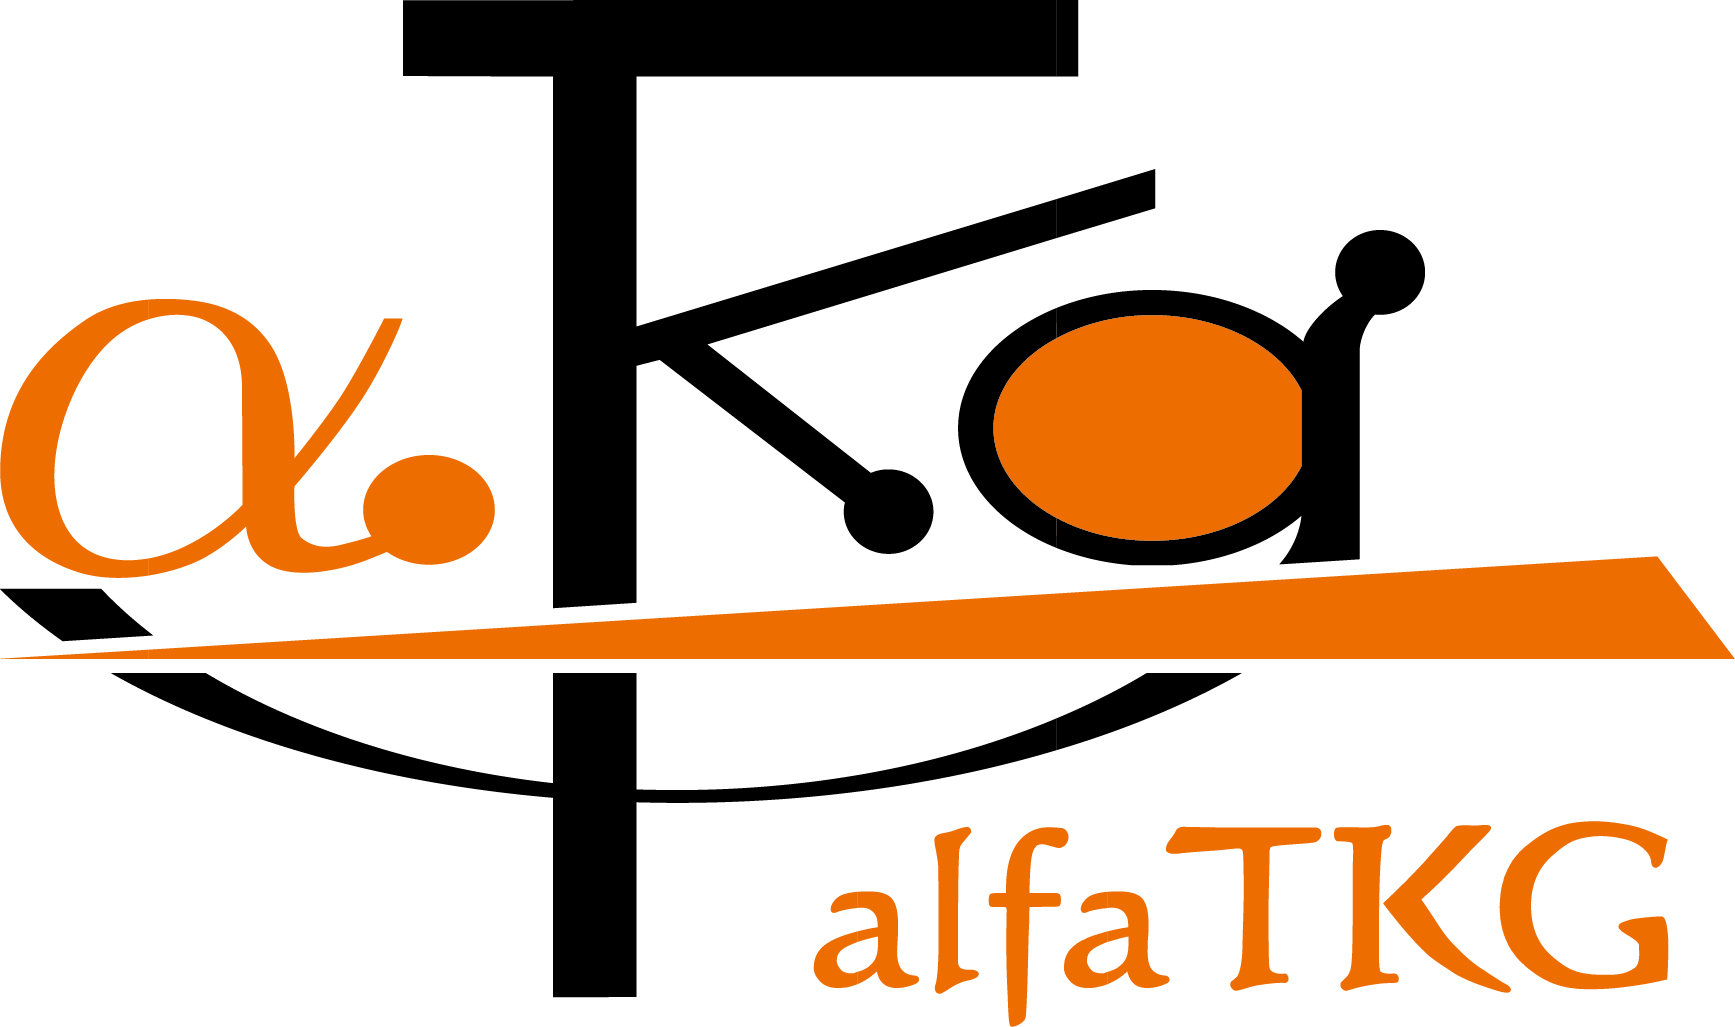 70712_alfaTKG_sign_Logo